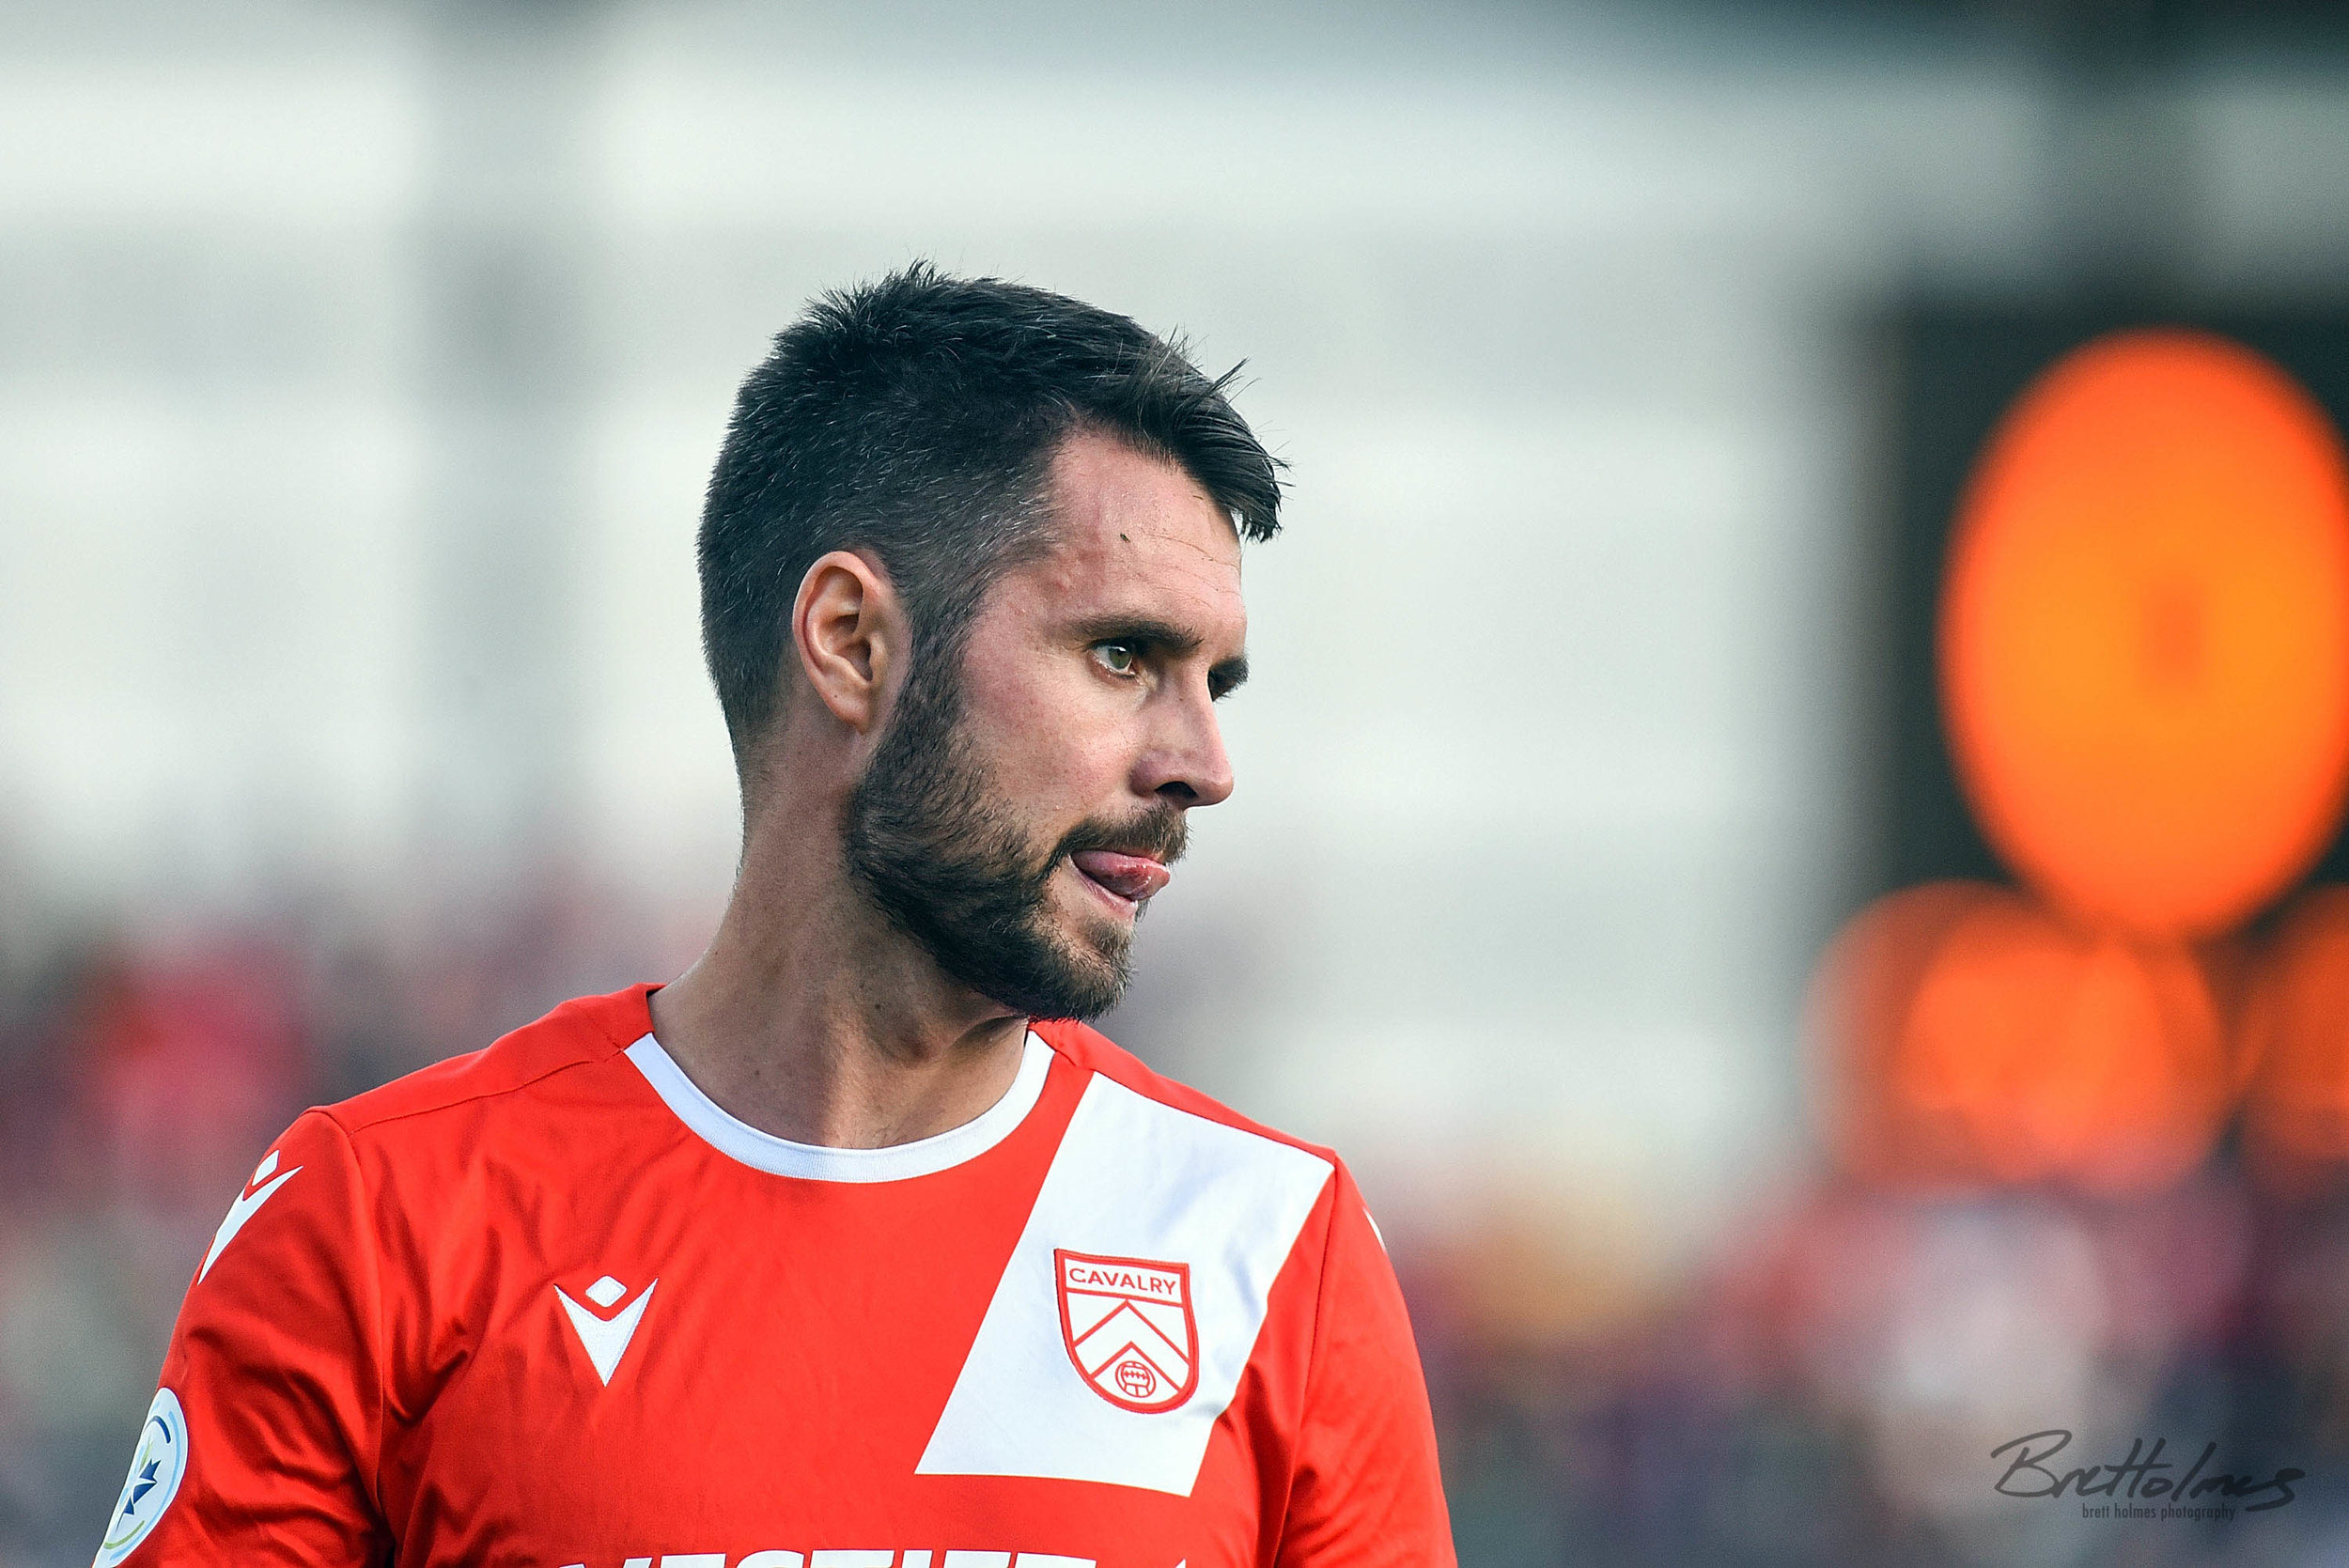 CALGARY, AB - AUGUST 14: Cavalry FC defender Jay Wheeldon (14) looks on during the first half of the second leg of a Canadian Championship semifinal match between the Montreal Impact and Cavalry FC on August 14, 2019, at ATCO Field at Spruce Meadows in Calgary, AB. (Photo by Brett Holmes/Icon Sportswire)